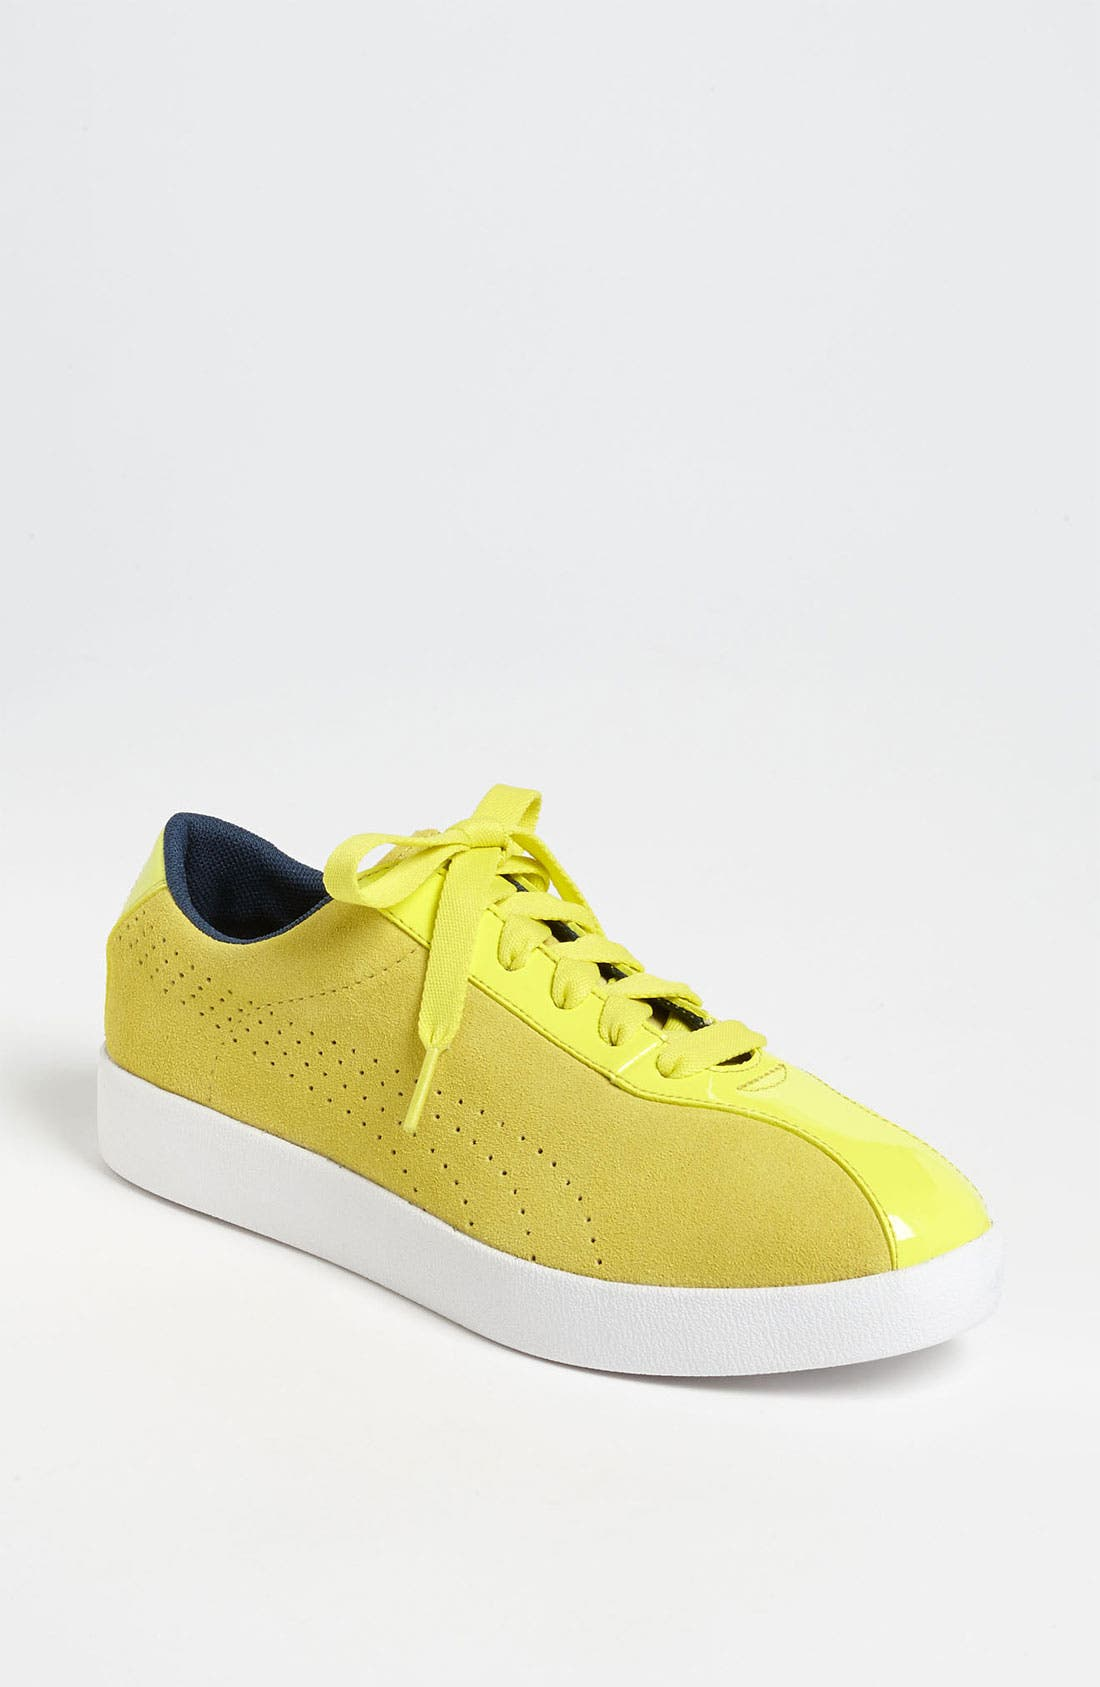 Alternate Image 1 Selected - PUMA 'Munster' Sneaker (Women)